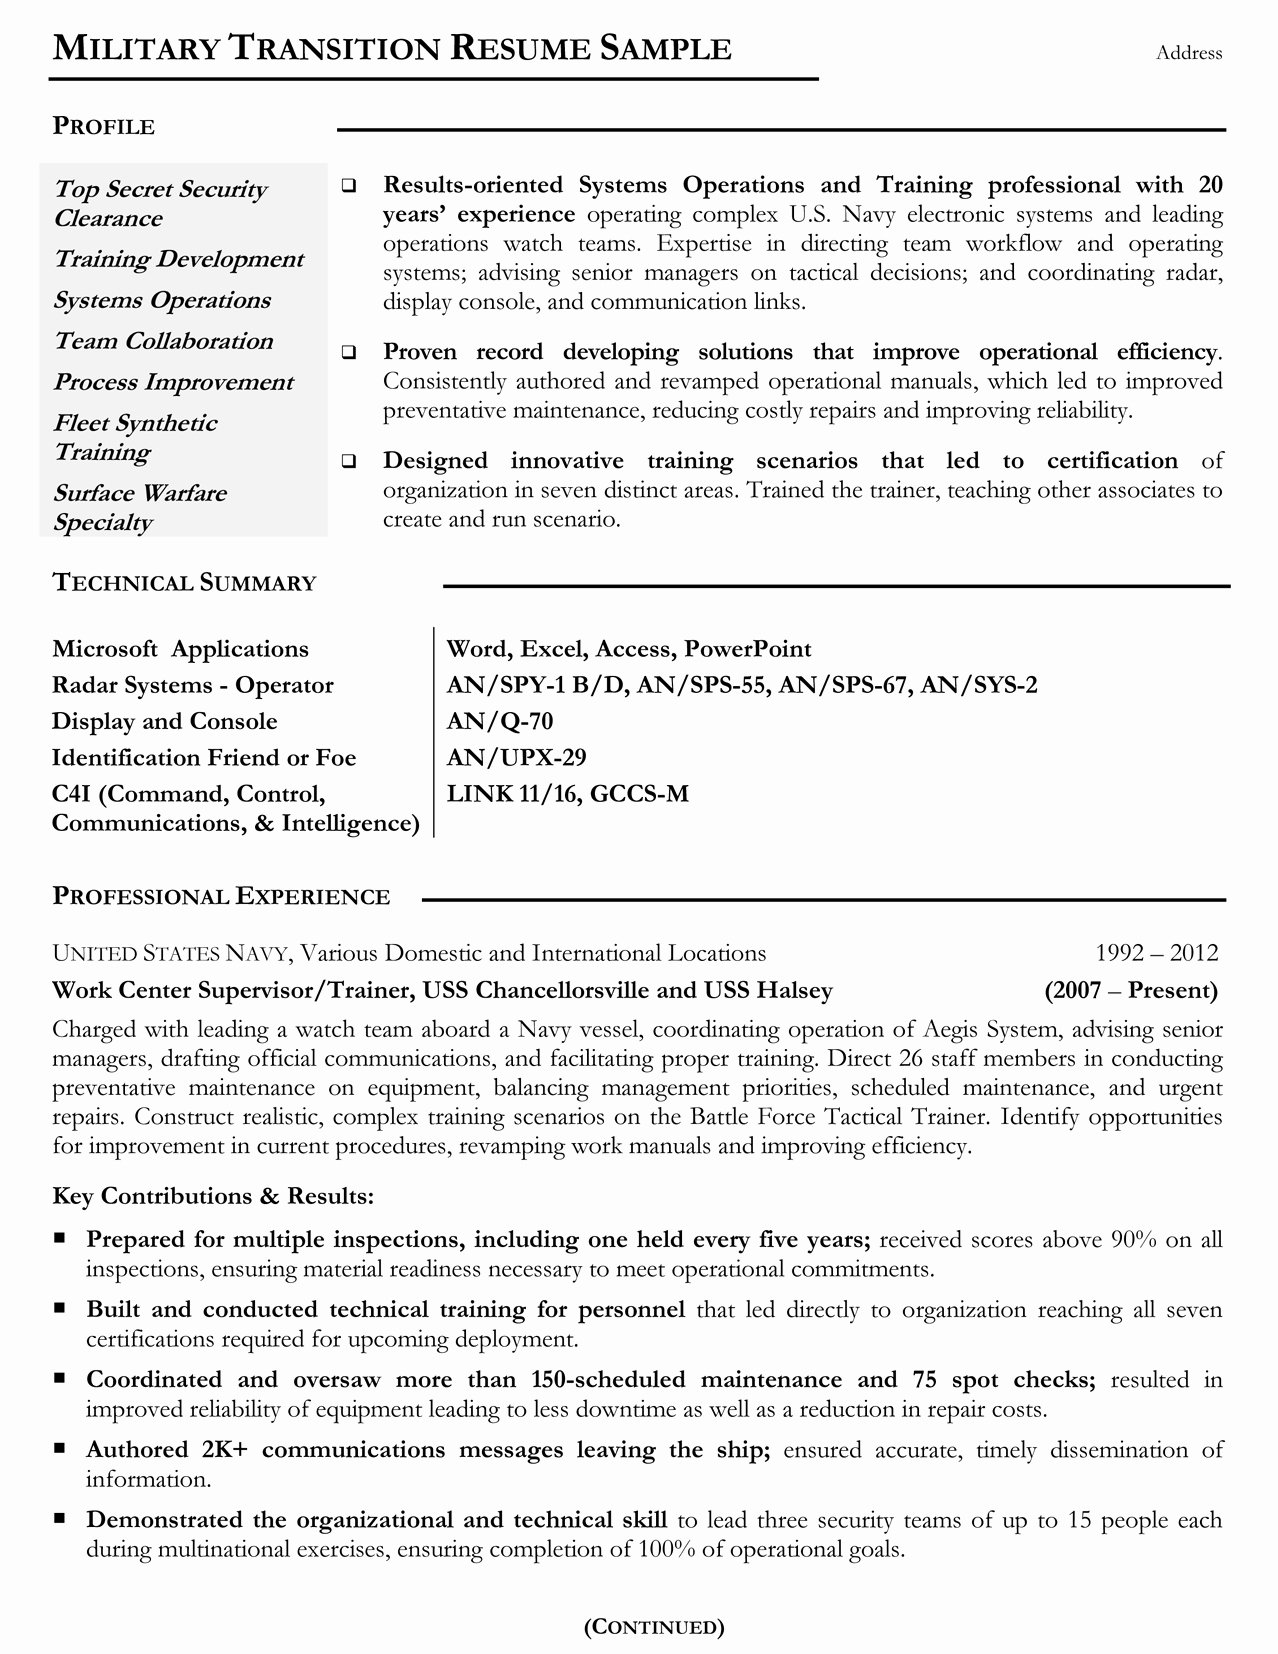 Where to Put Military Service Resume Resume Ideas